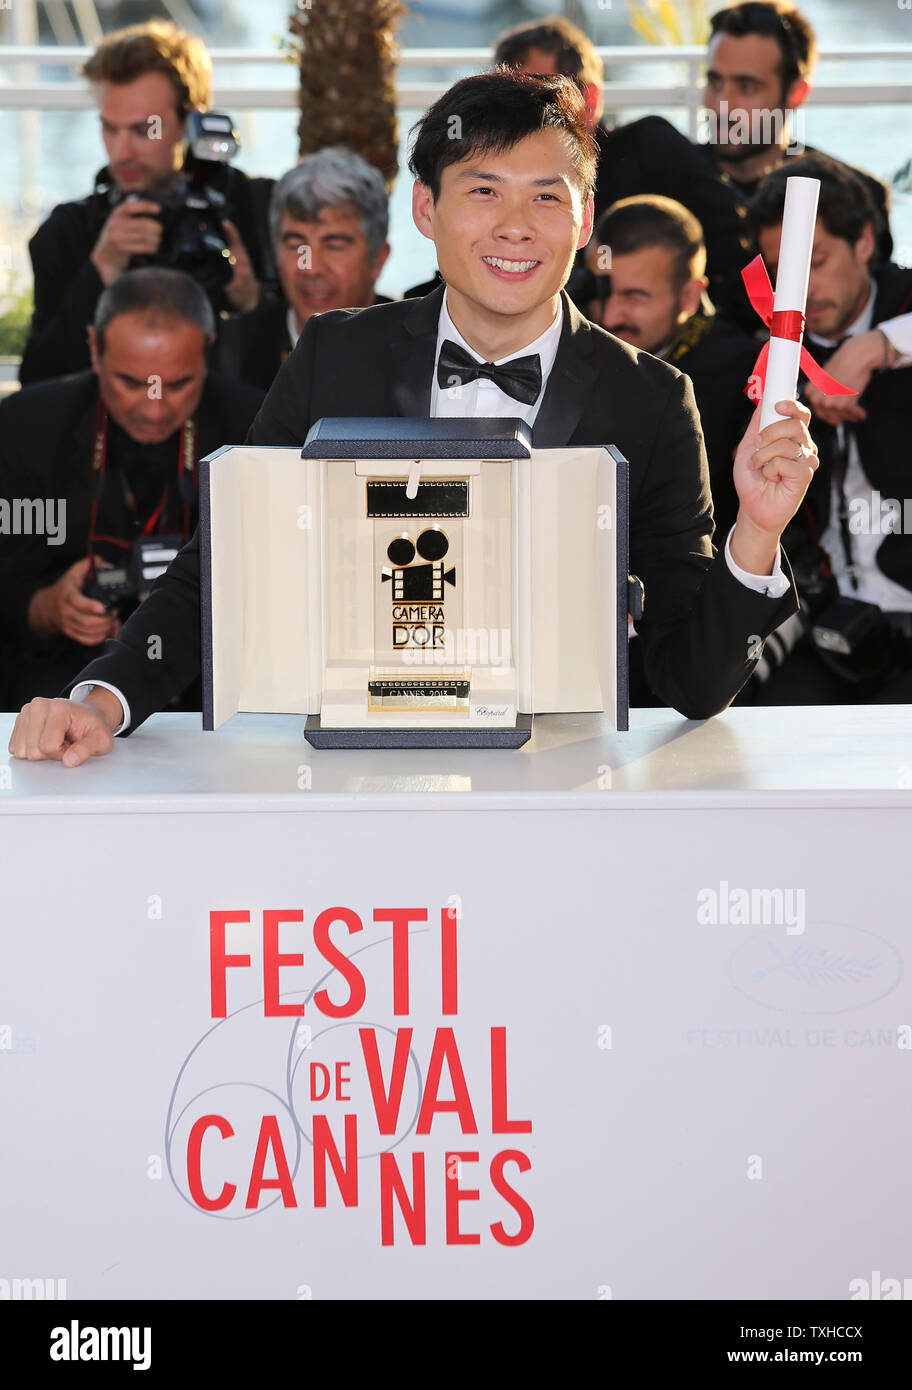 Anthony Chen arrives at the award photocall after receiving the 'Camera d'Or' prize for the film 'Ilo ilo' during the 66th annual Cannes International Film Festival in Cannes, France on May 26, 2013.   UPI/David Silpa - Stock Image